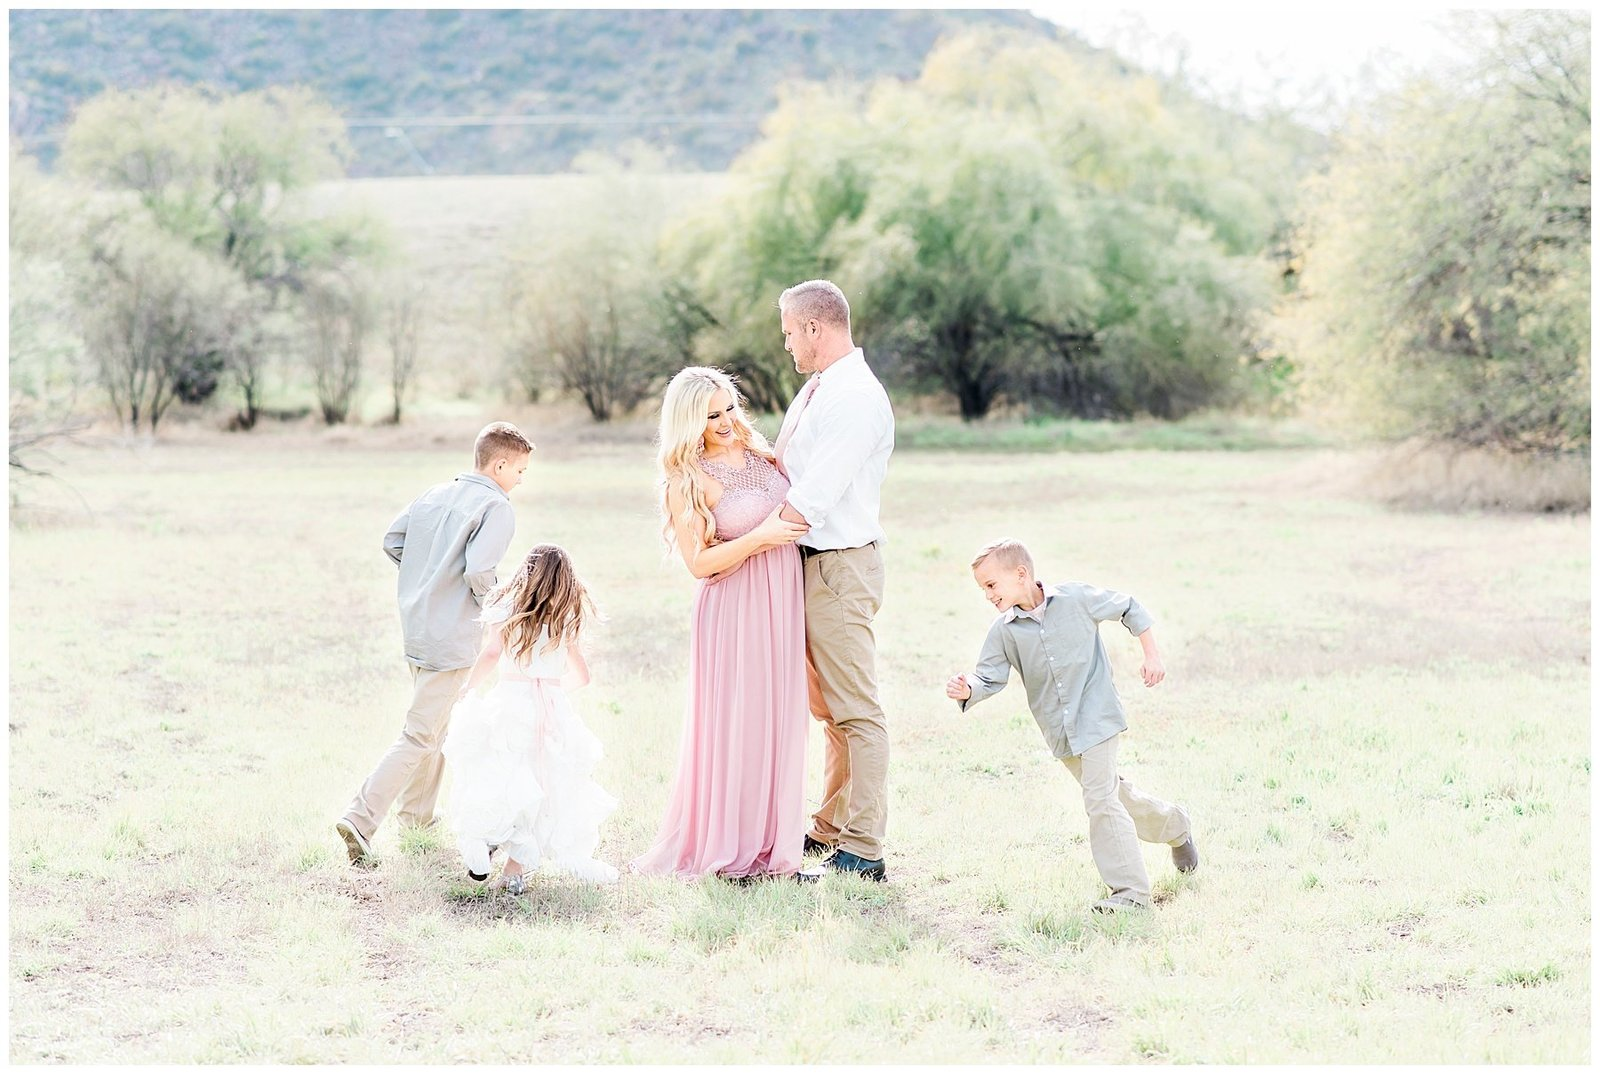 Cooper's-Family-Maternity-Photography-Glendale-Arizona-Ashley-Flug-Photography30